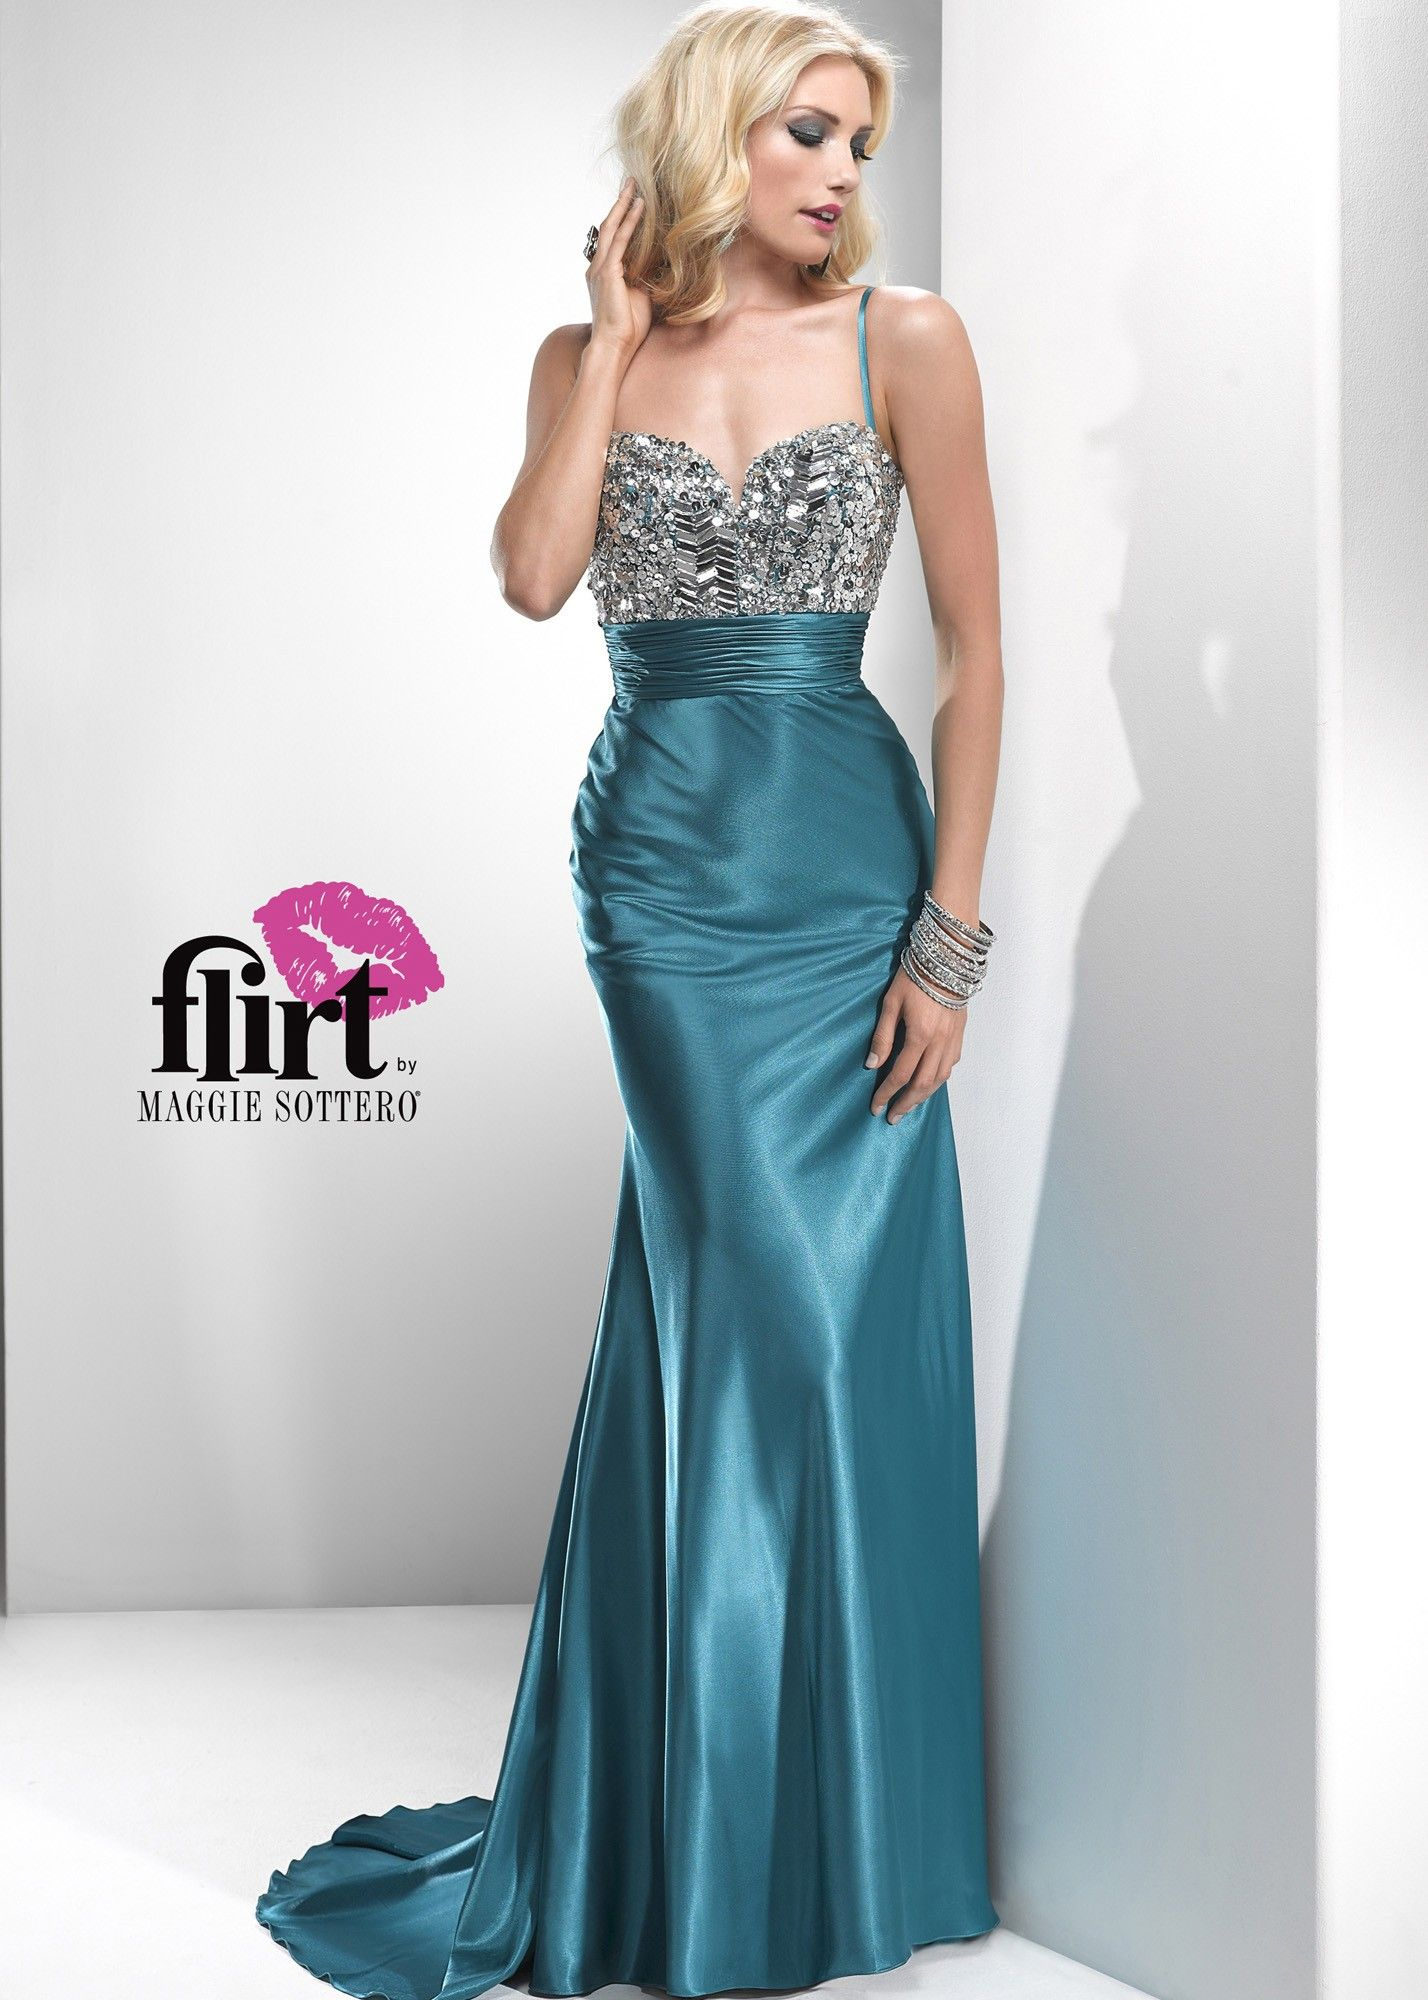 Flirt by Maggie Sottero P2777 - Vintage Teal Satin Evening Gown ...